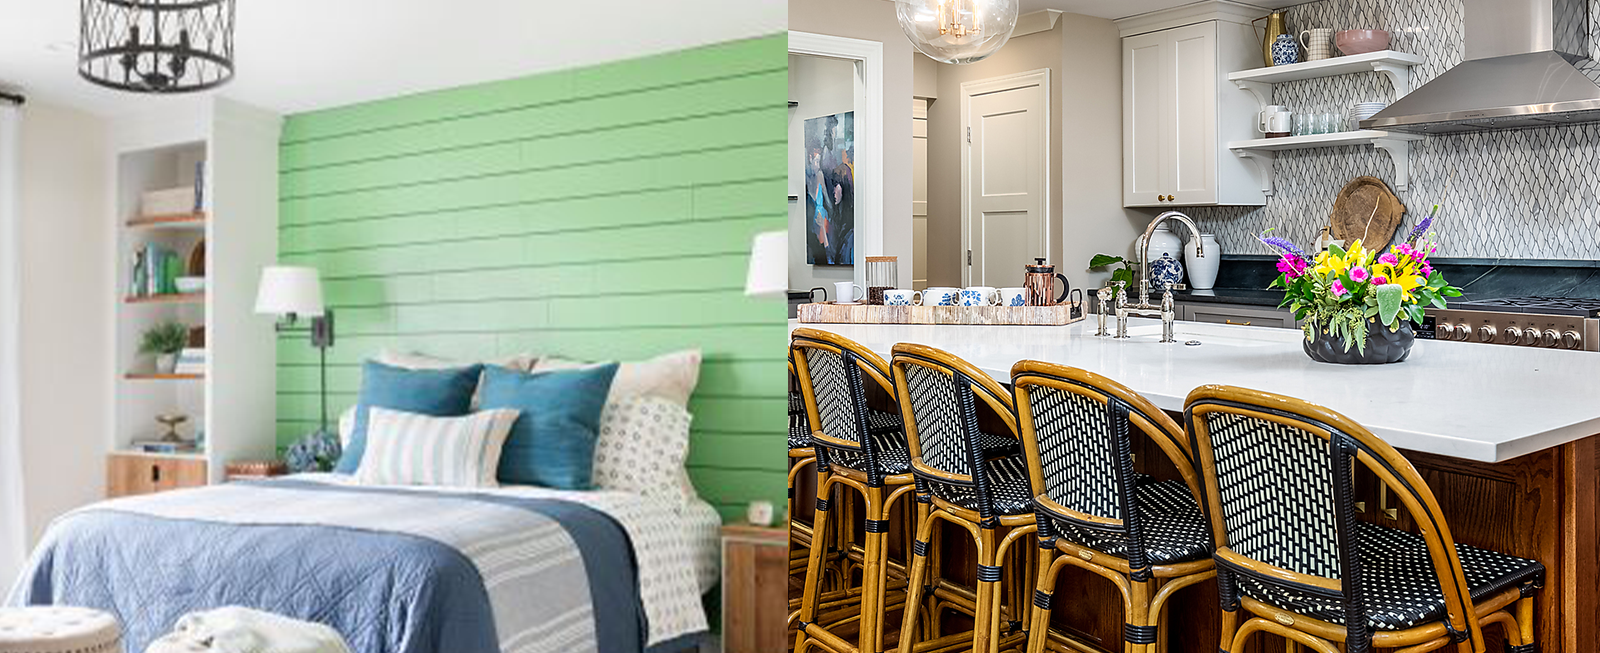 Which room do you think is more important when flipping a home?